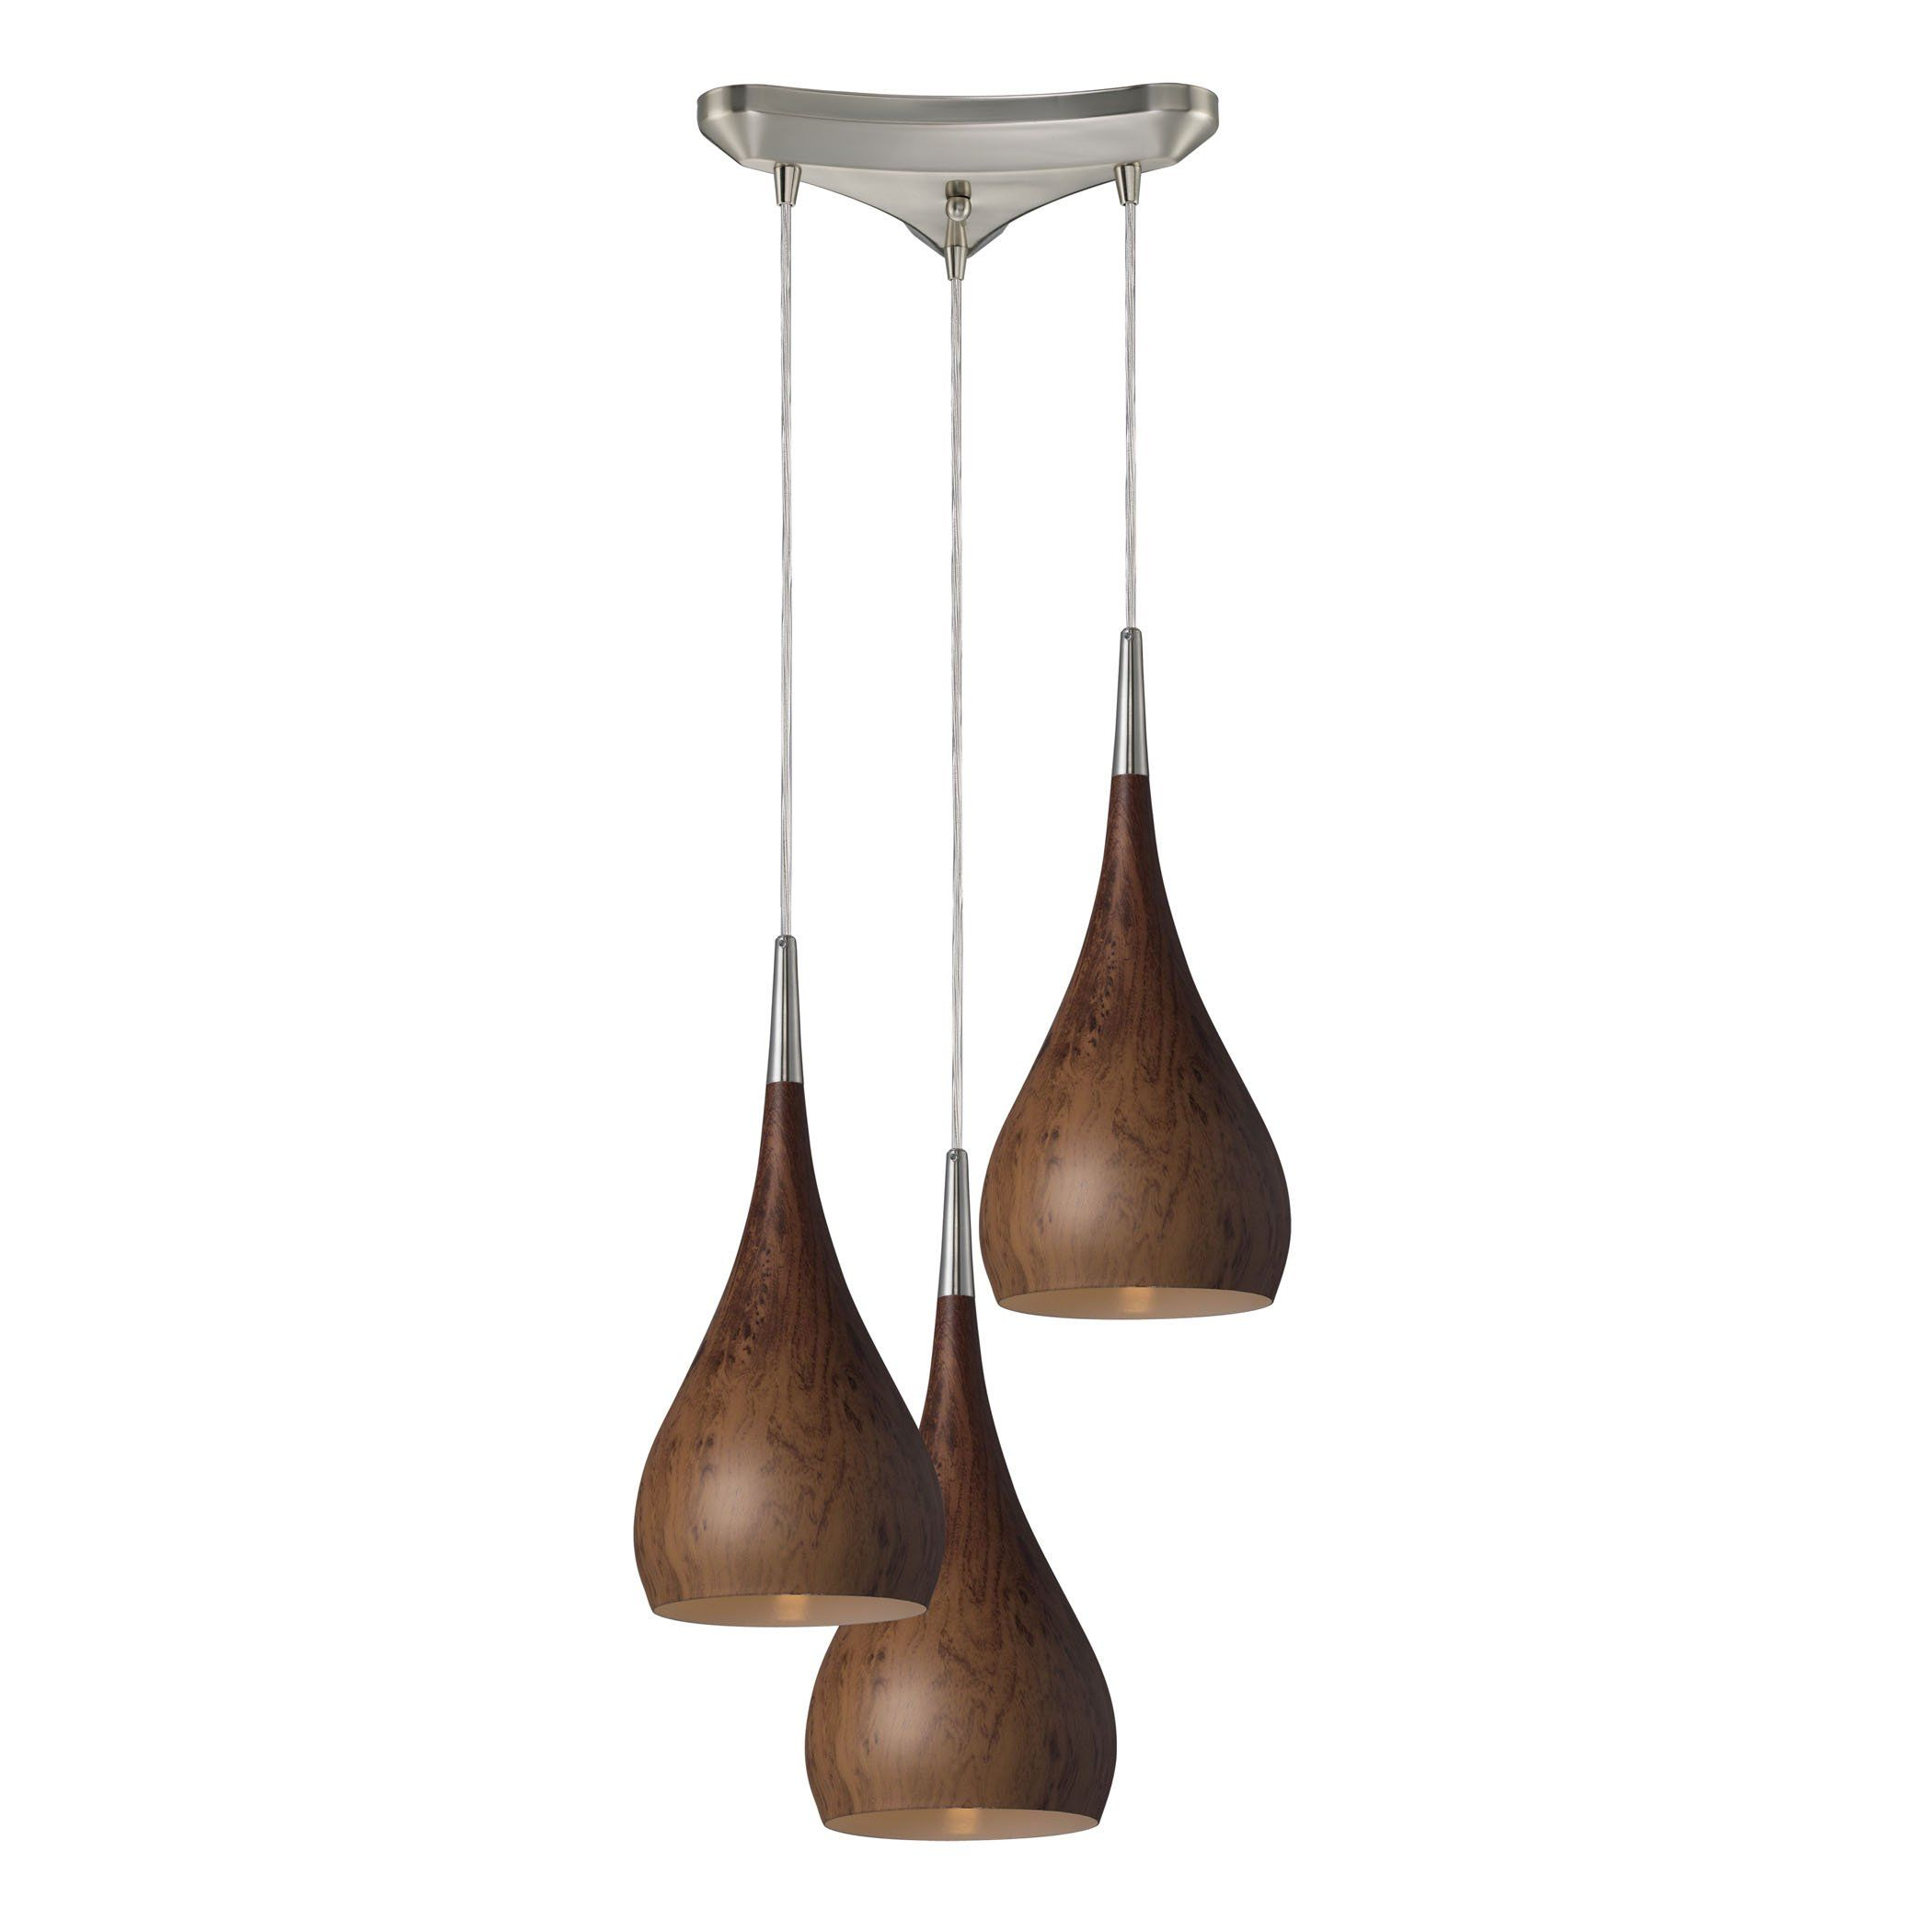 Lindsey led light pendant in burl wood and satin nickel by elk